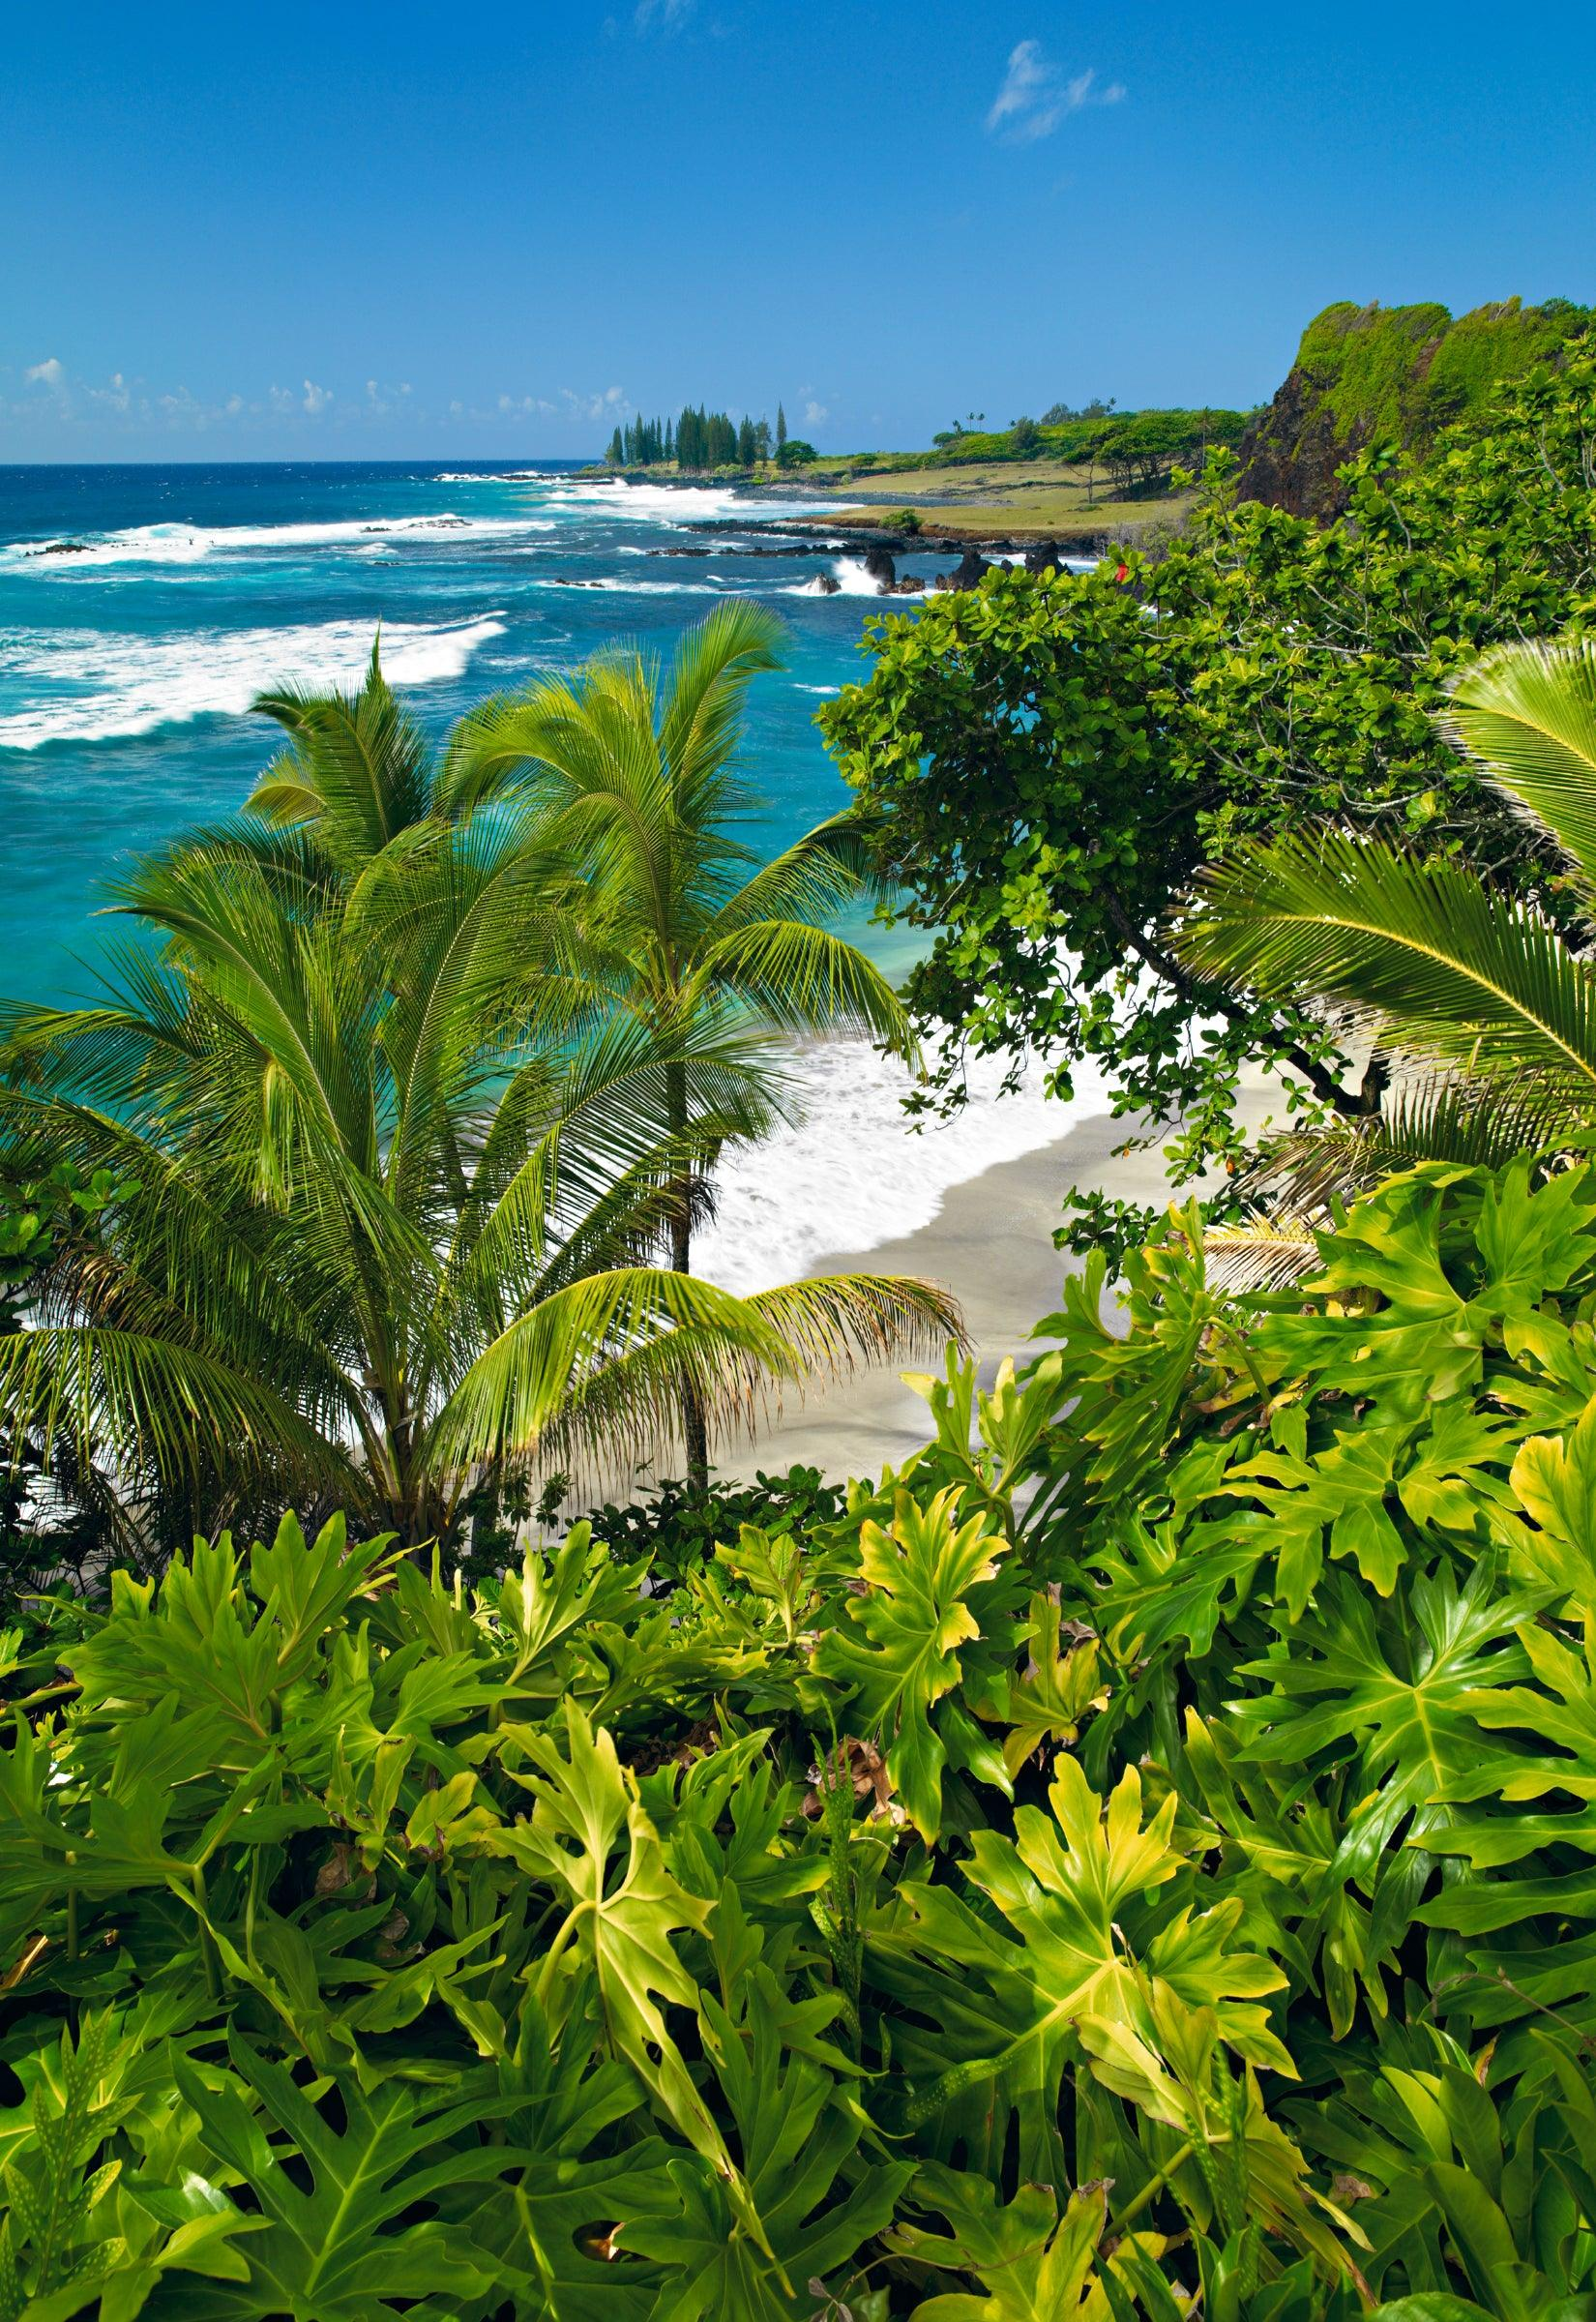 Looking over tropical foliage and palm trees down to Hamoa beach and coastline of Maui Hawaii